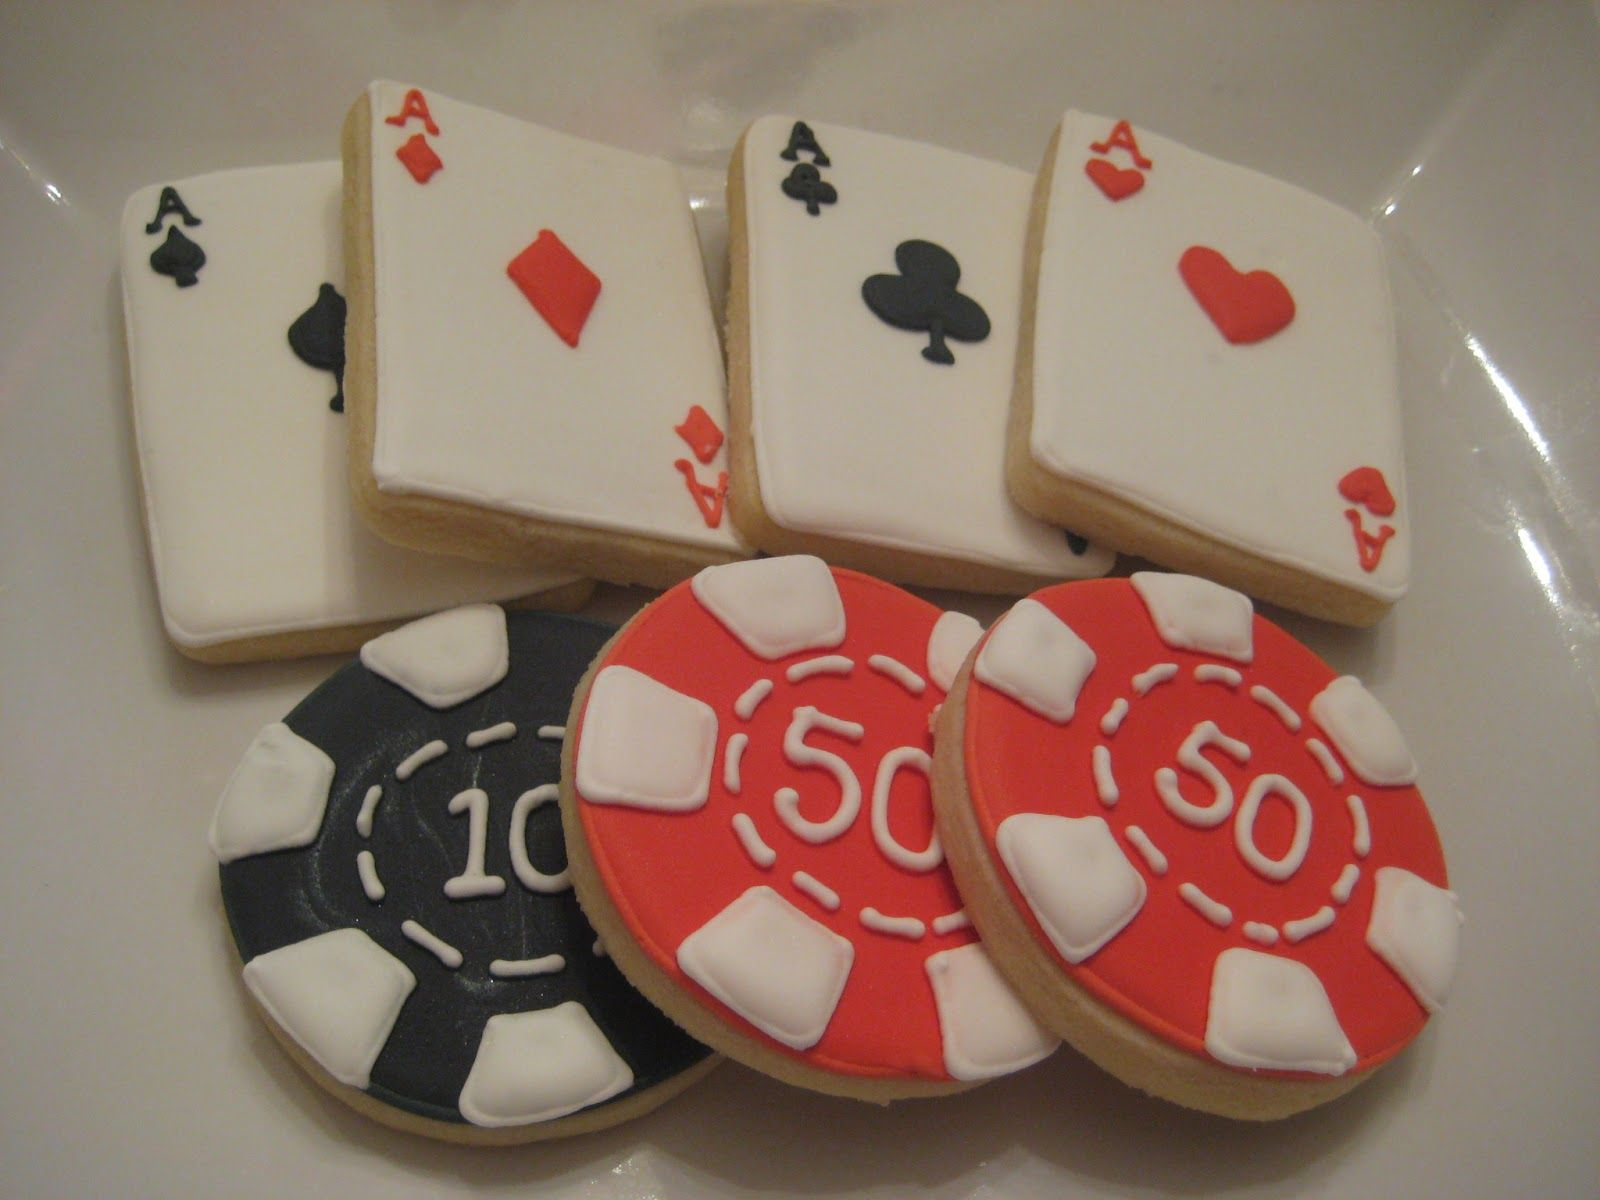 How to make poker chips lost echo poker